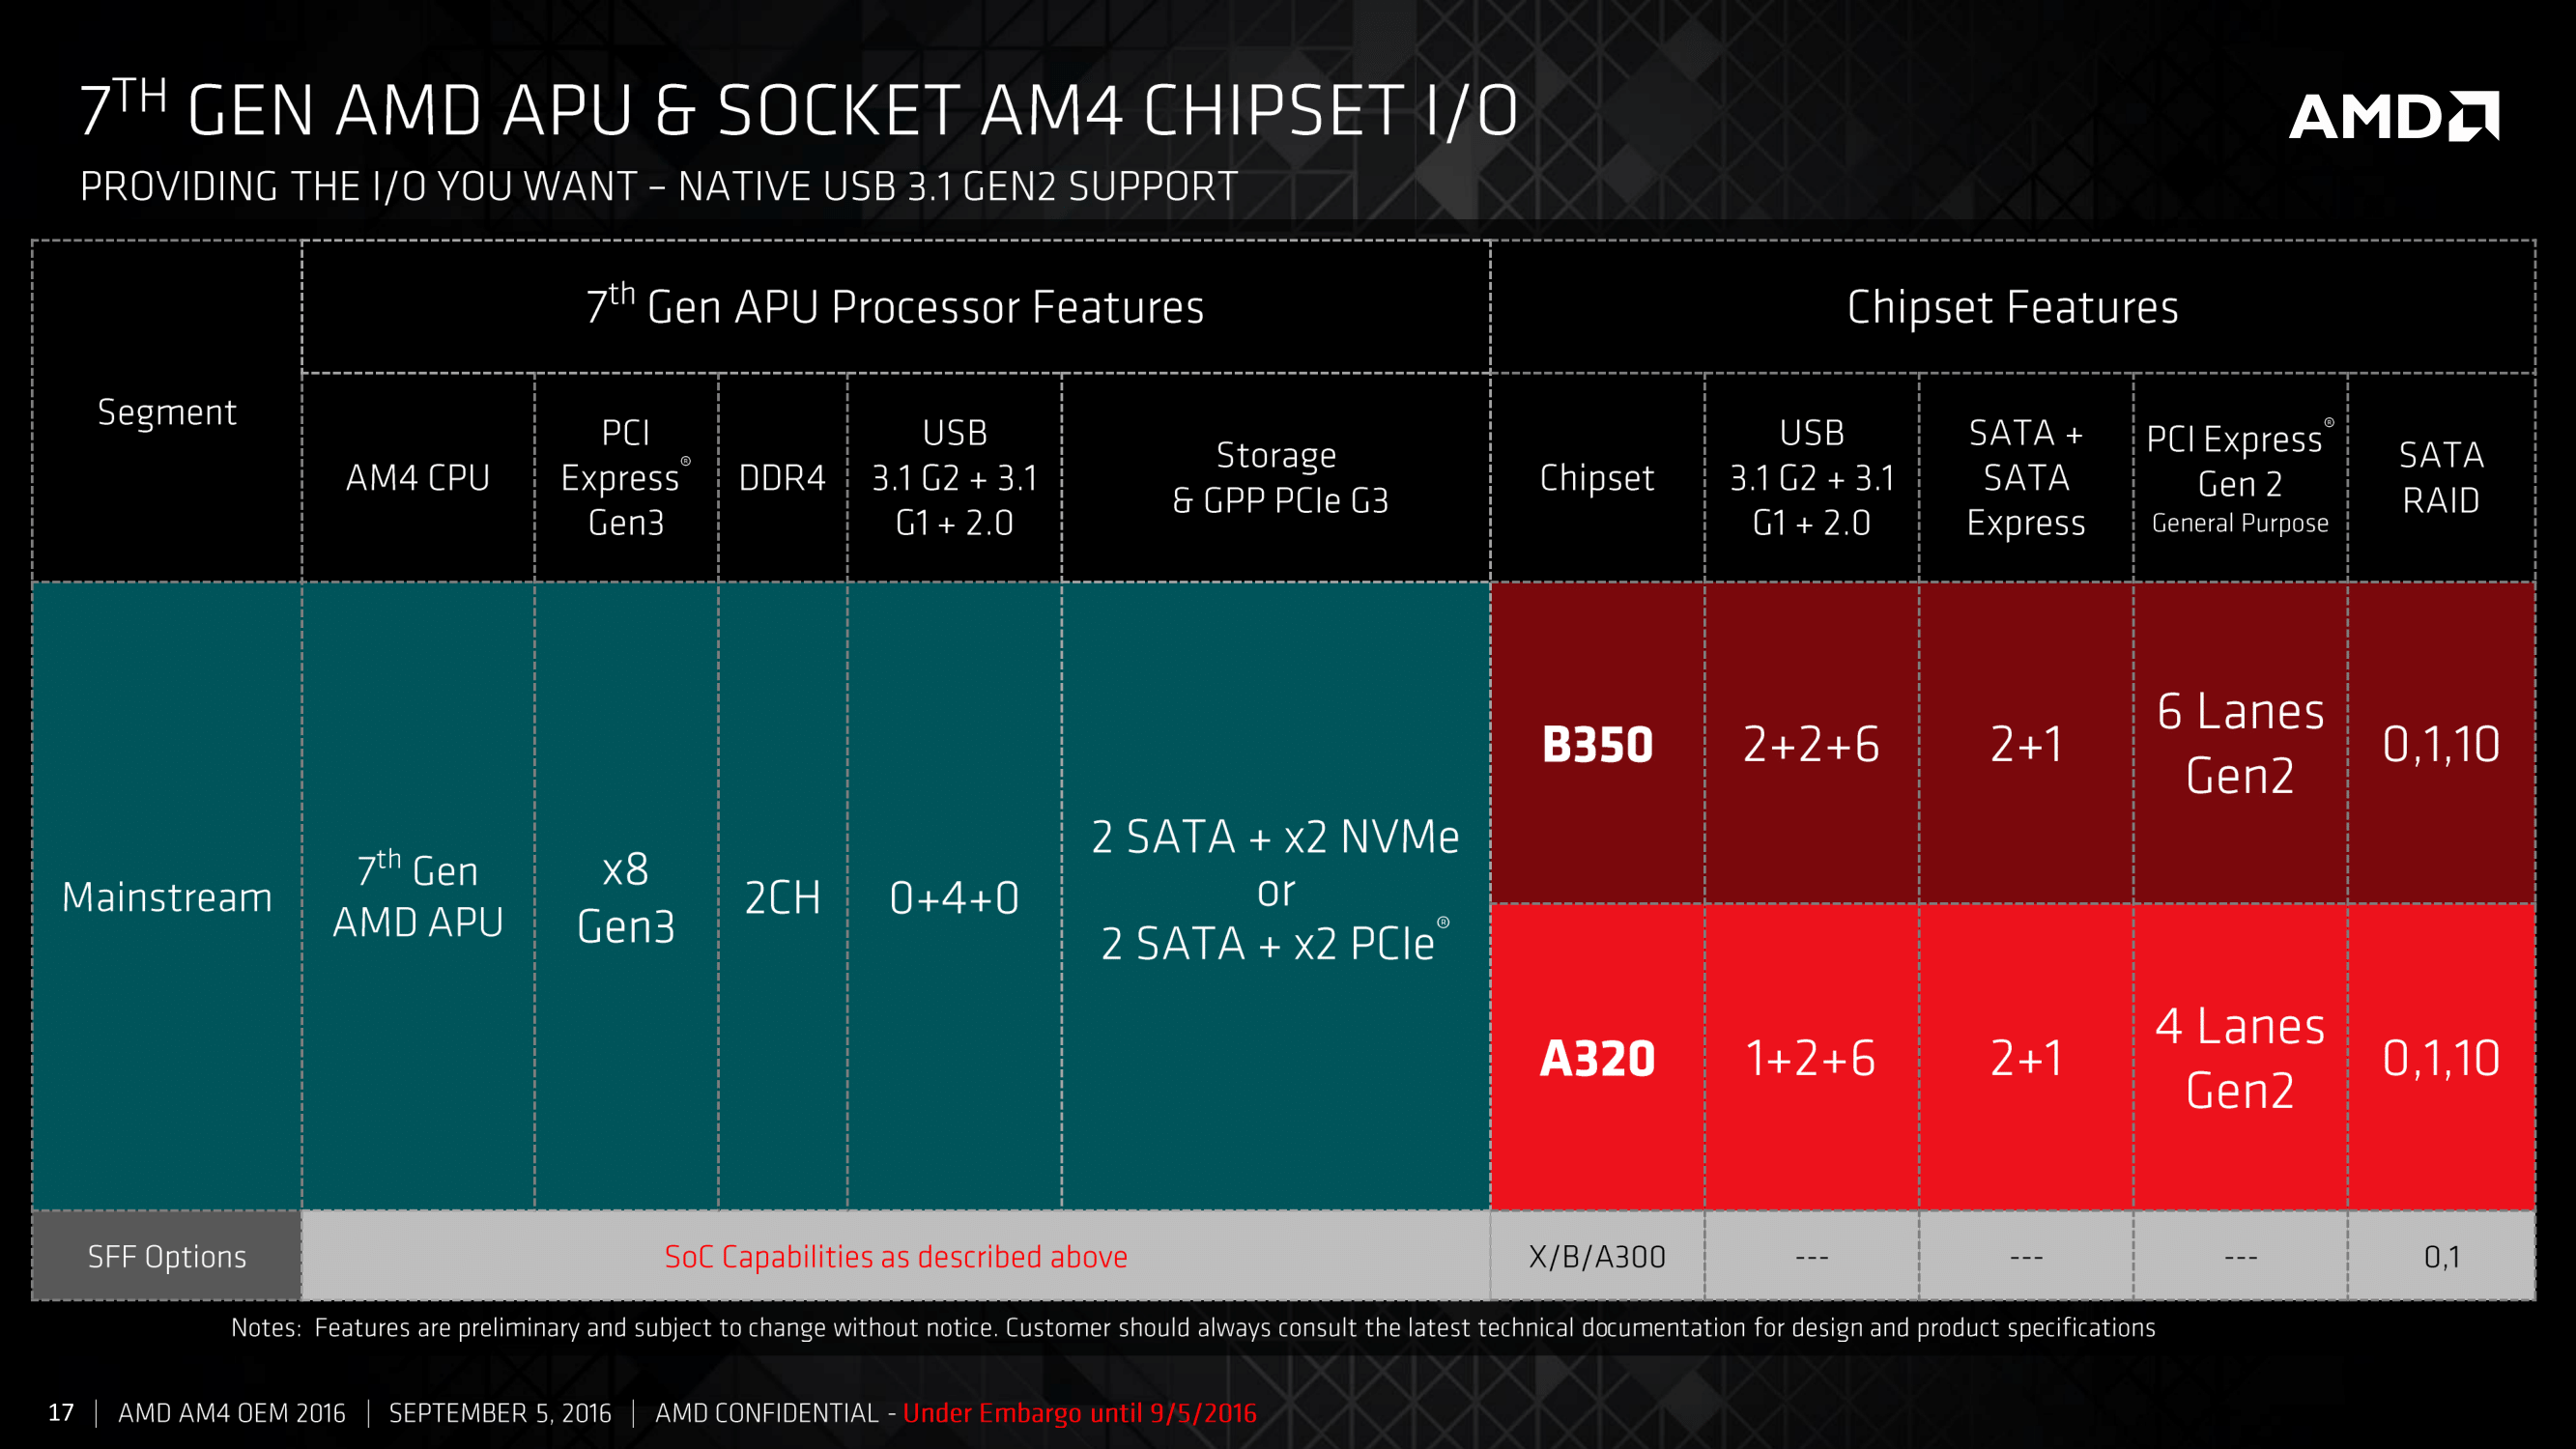 The Two Main Chipsets: B350 and A320 - AMD 7th Gen Bristol Ridge and